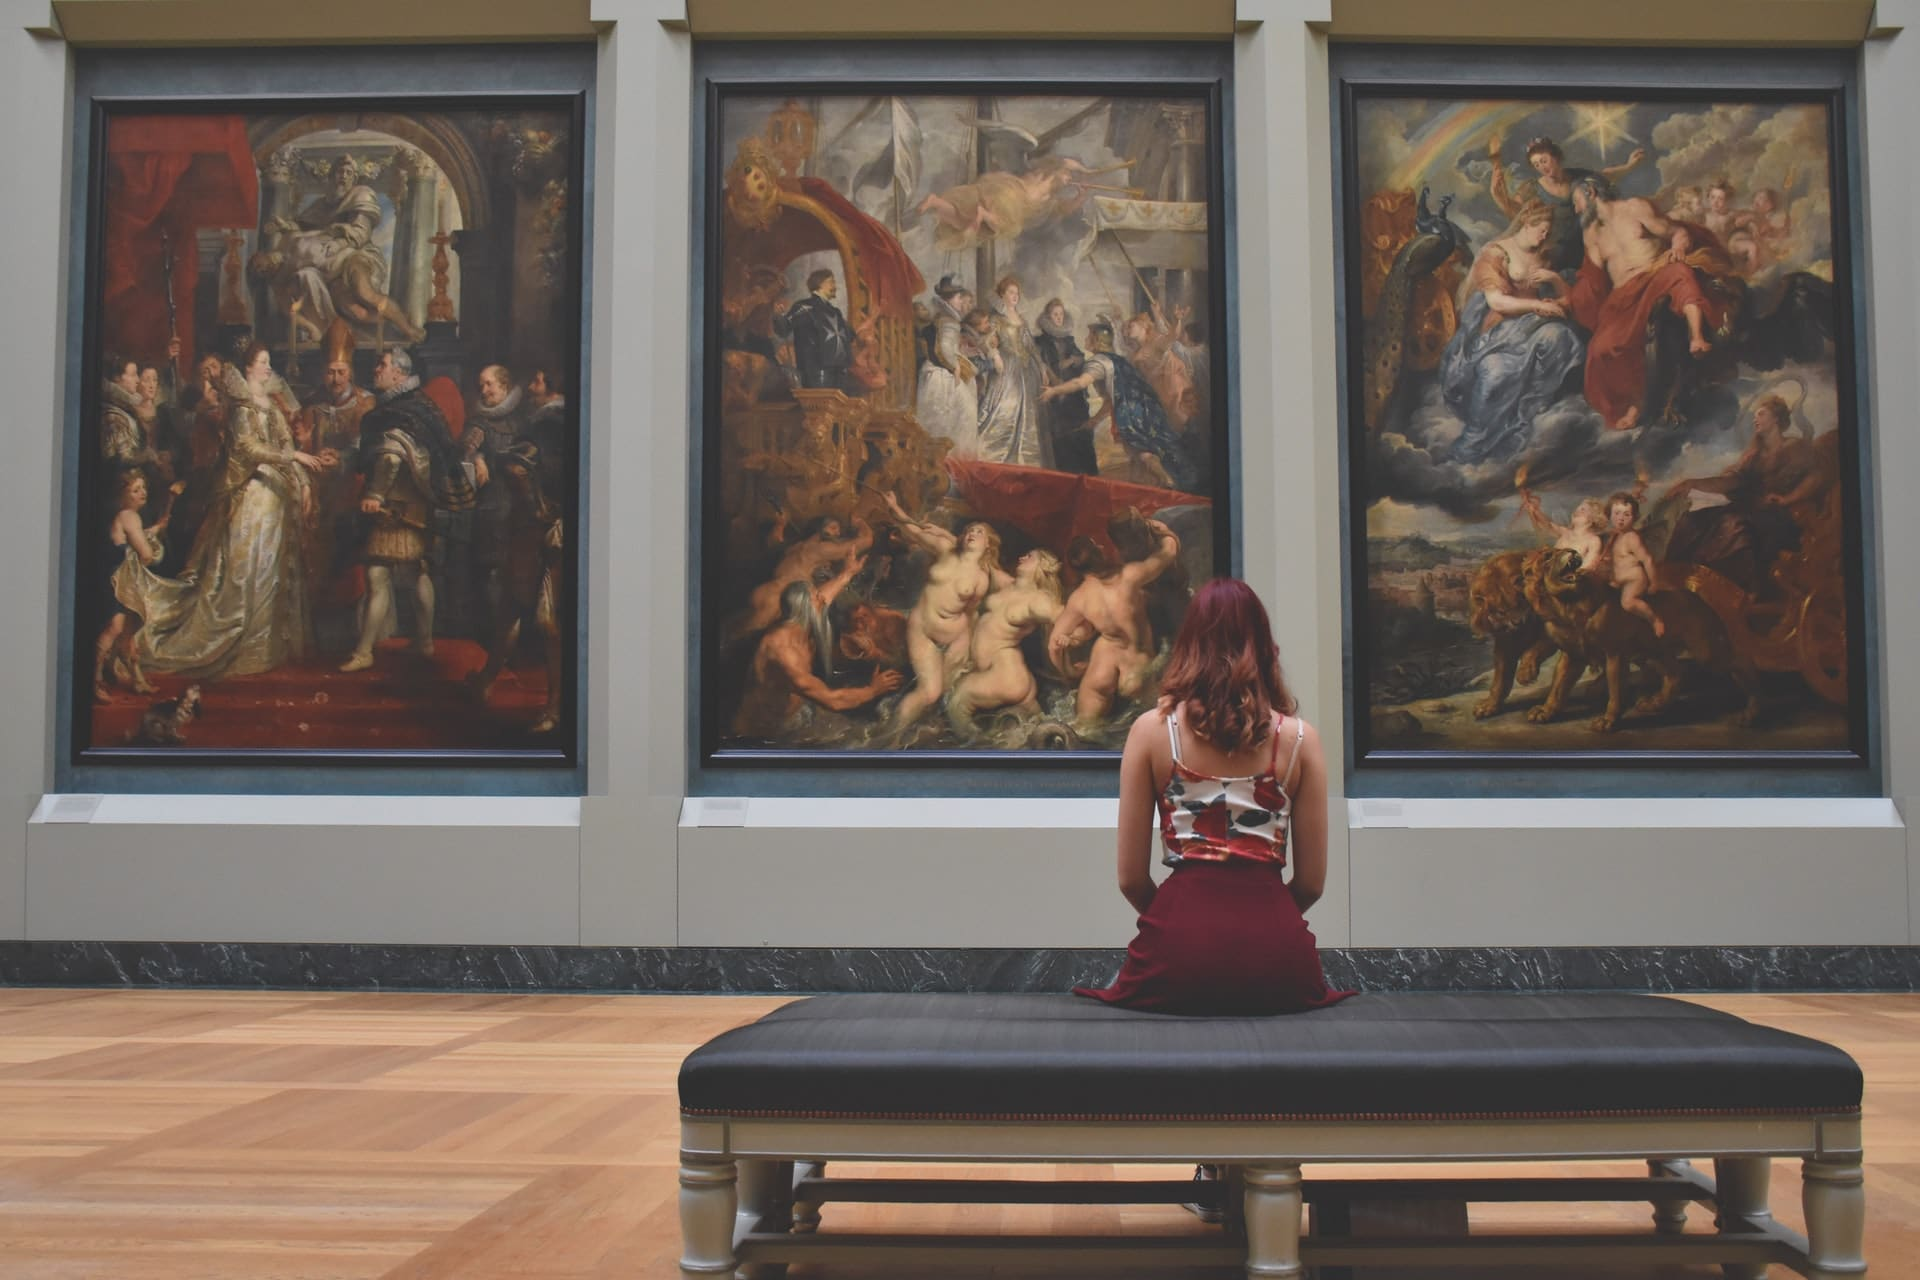 Woman sitting in museum with antique art paintings